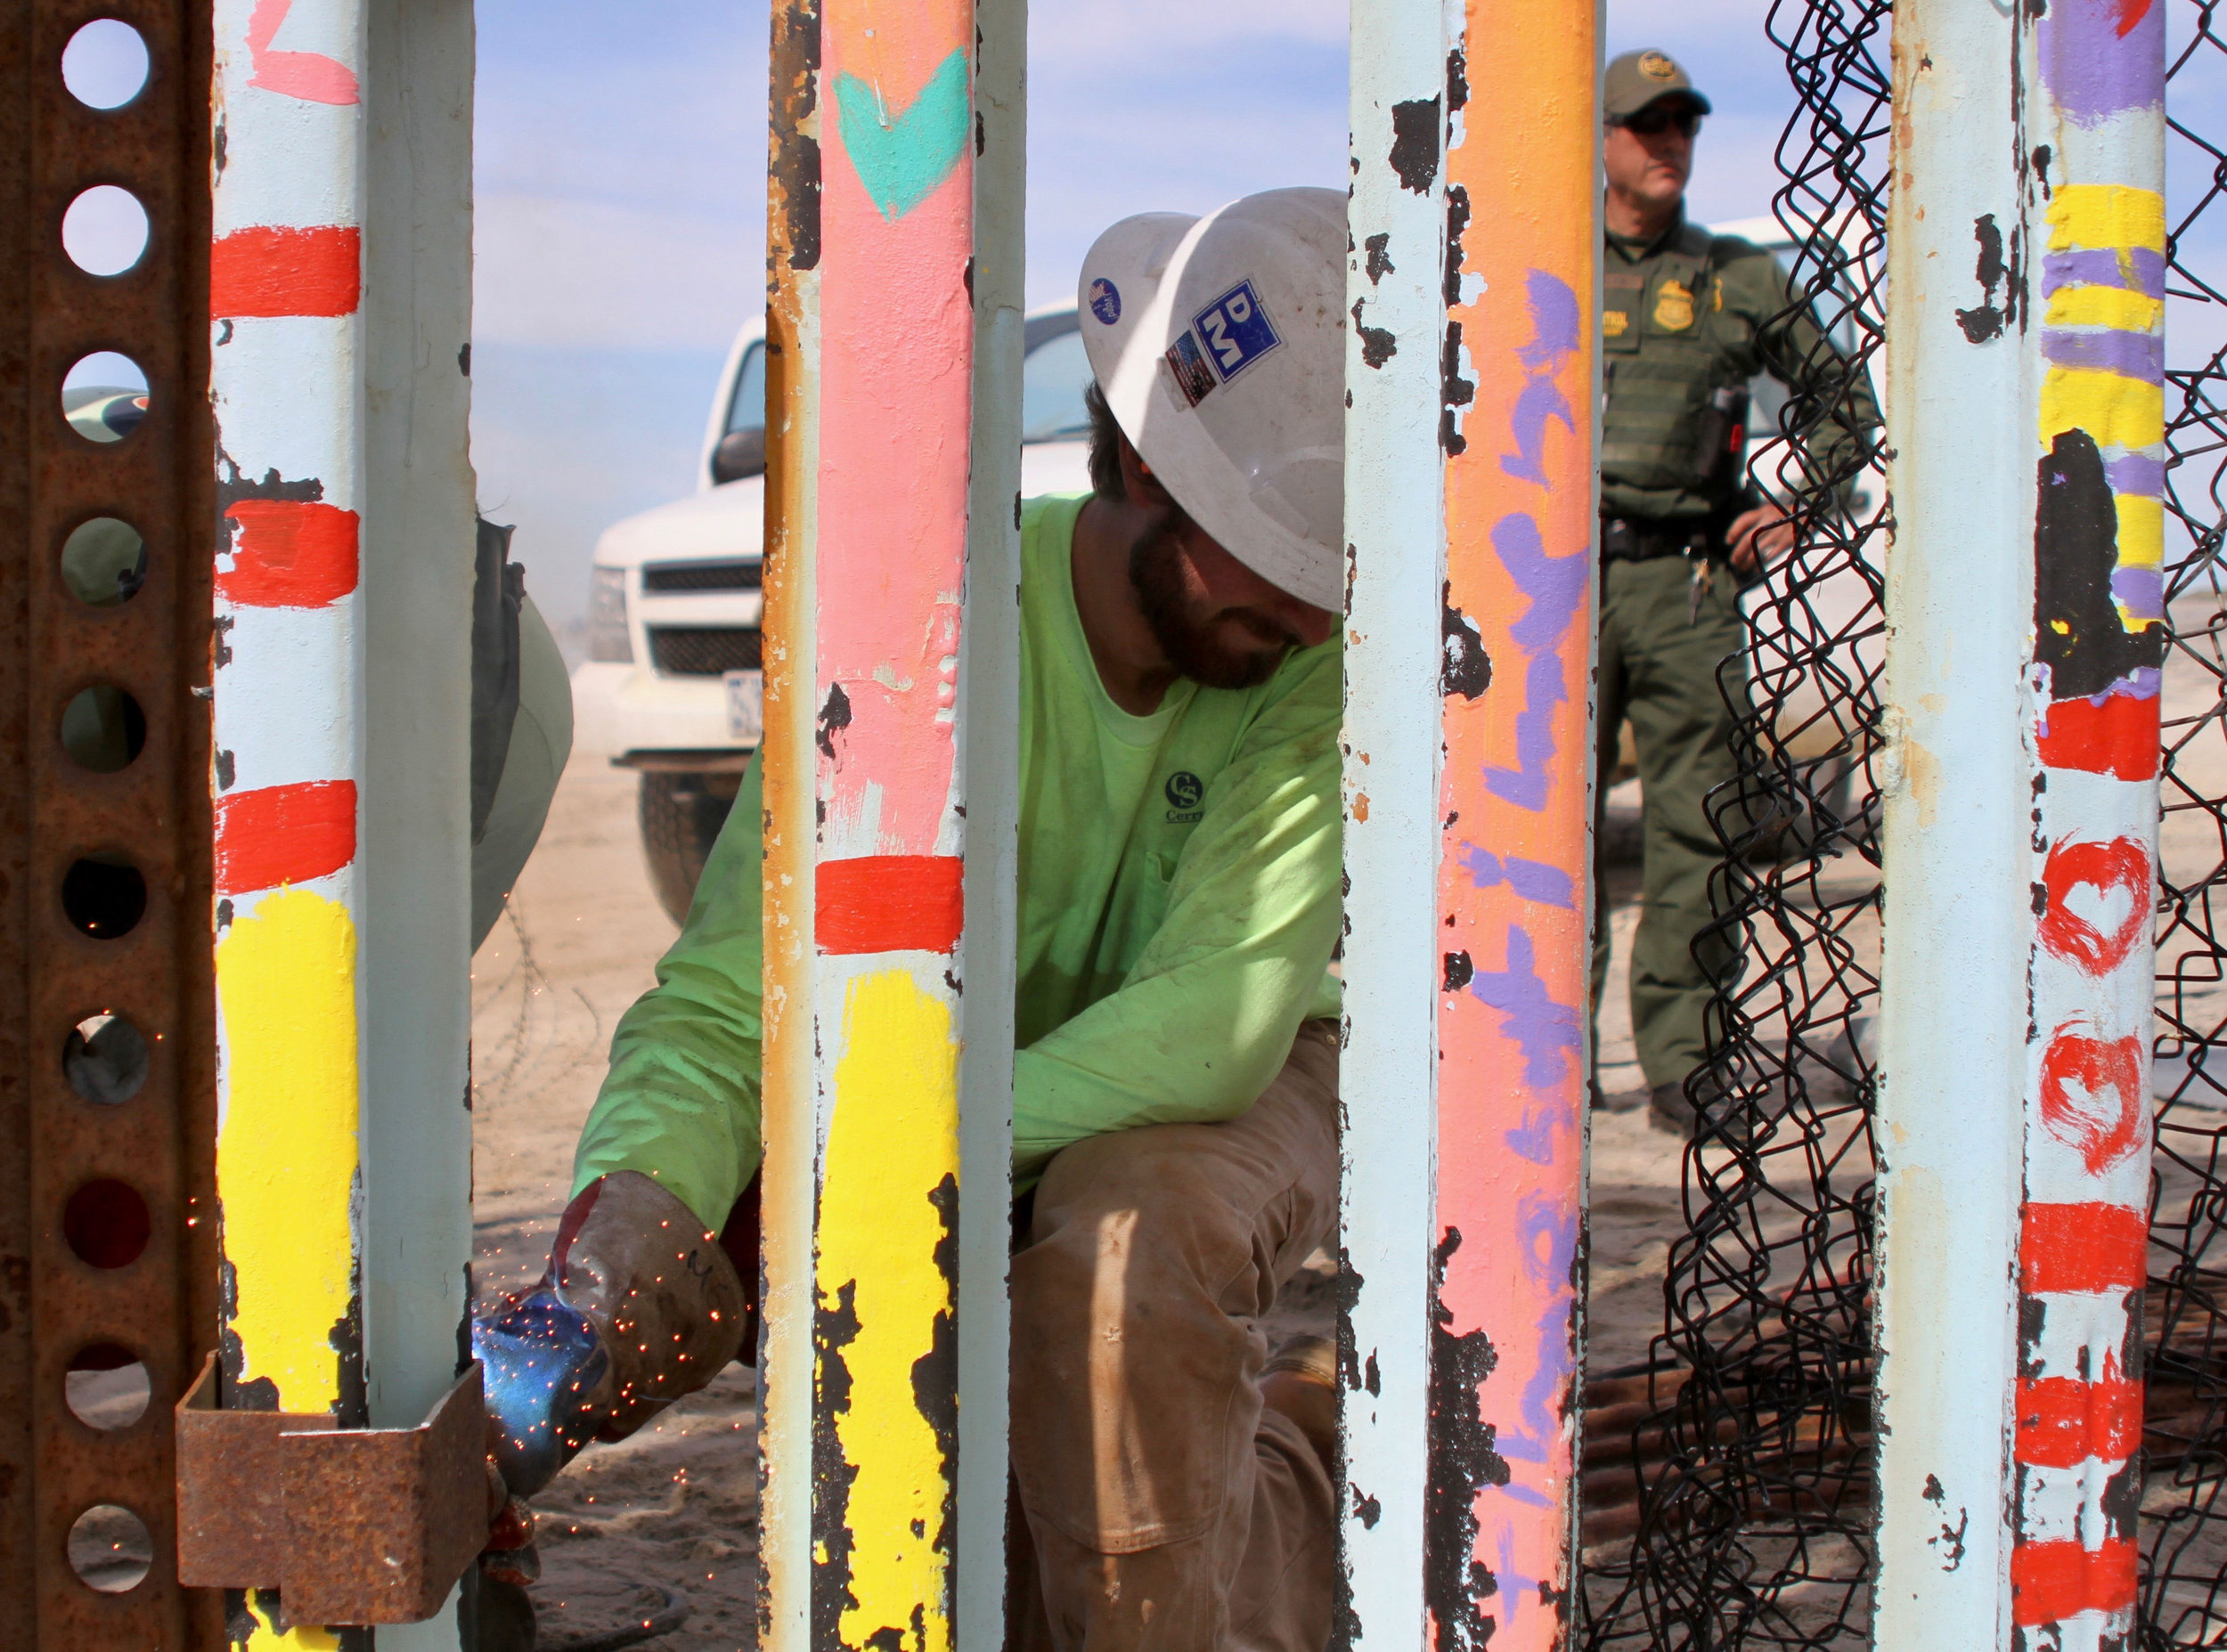 "A Cerrudo Services construction worker welds a piece of rusted steel onto the border wall in Playas de Tijuana as a Border Patrol agent watches on standby on Friday, March 15, 2019 in Tijuana, Mexico. Cerrudo Services is a ""construction and service contractor specializing in federal government contracting,"" according to the company's website. The construction on this section of the border wall comes after two different incidents of significantly large groups of migrants crossing through the border wall between gaps and openings on Thursday, March 14 and on Friday, March 15. ( Ryanne Mena / The Corsair )"